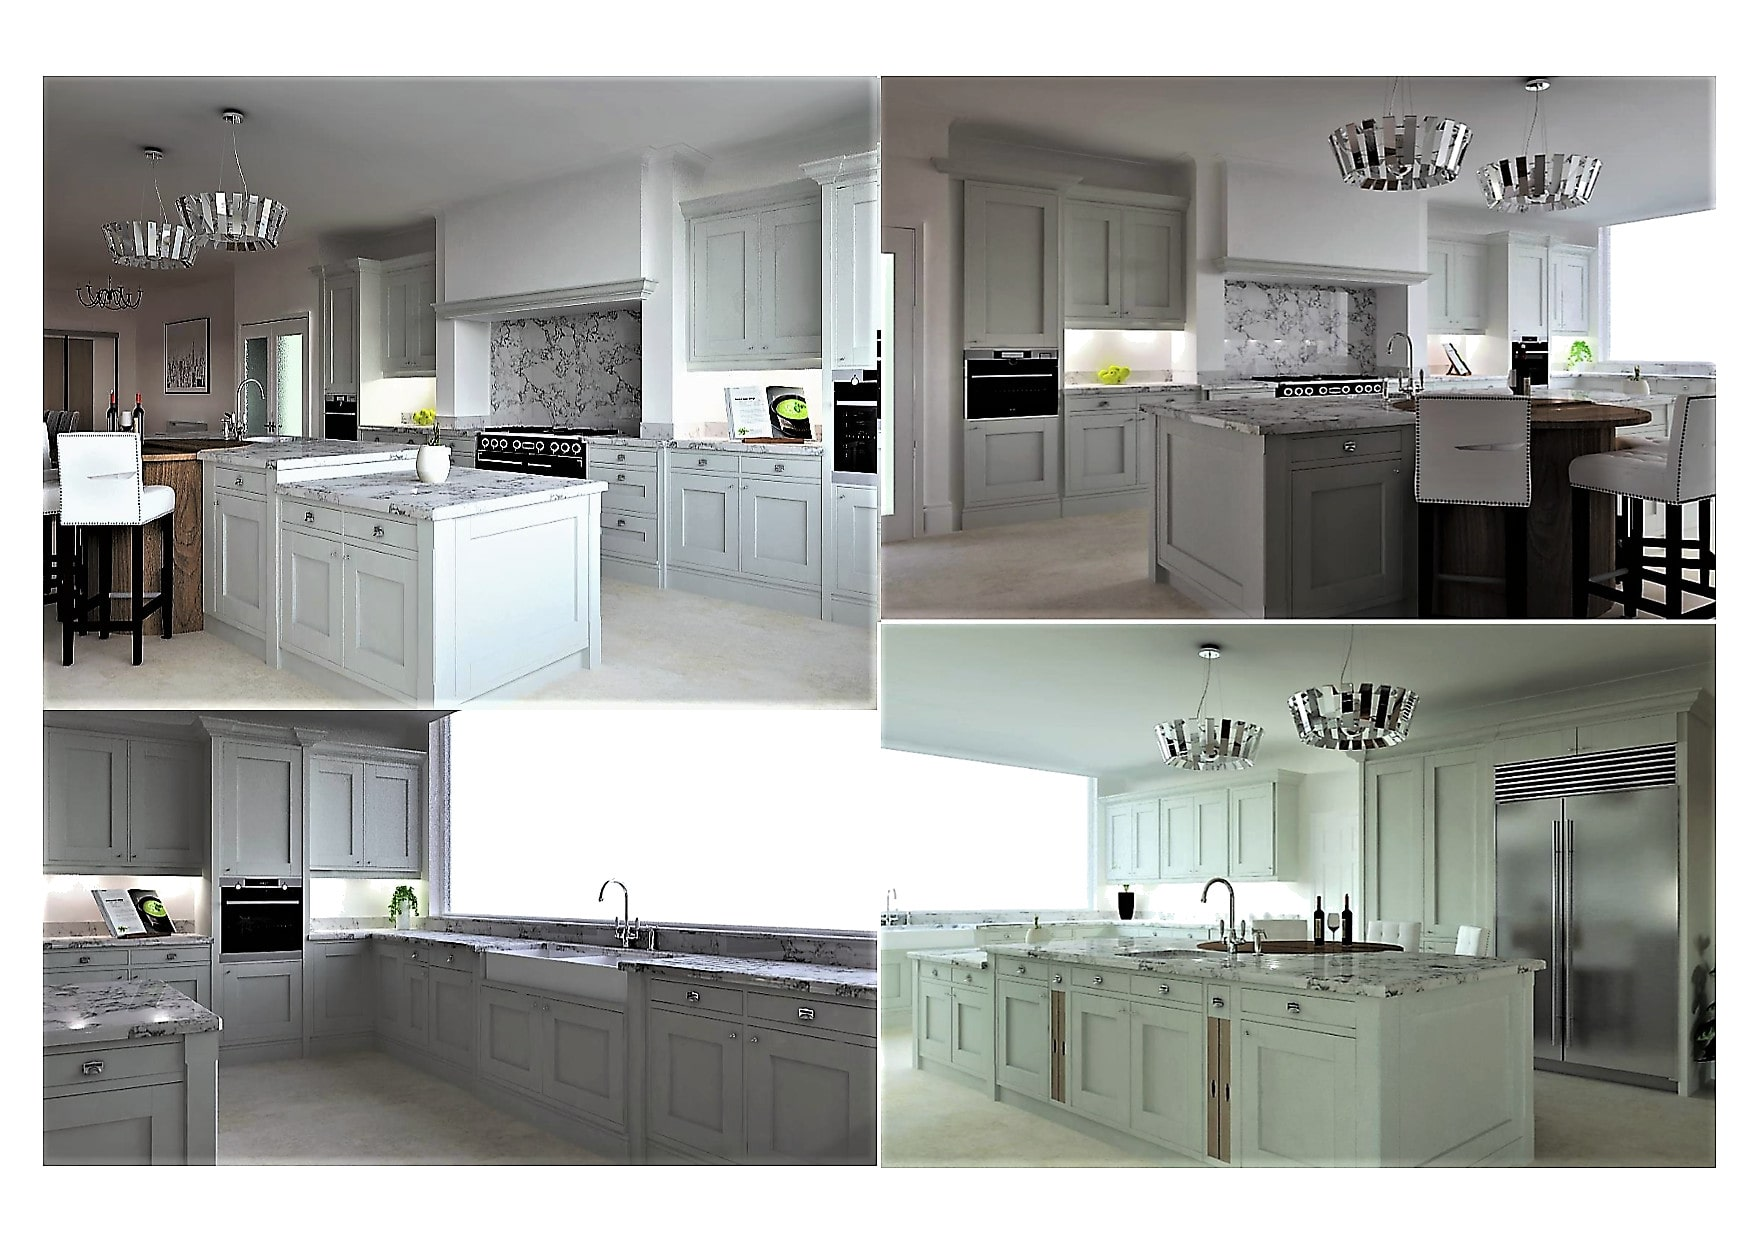 Create A Professional Kitchen Design From Scratch With Revisions By Niallbryson